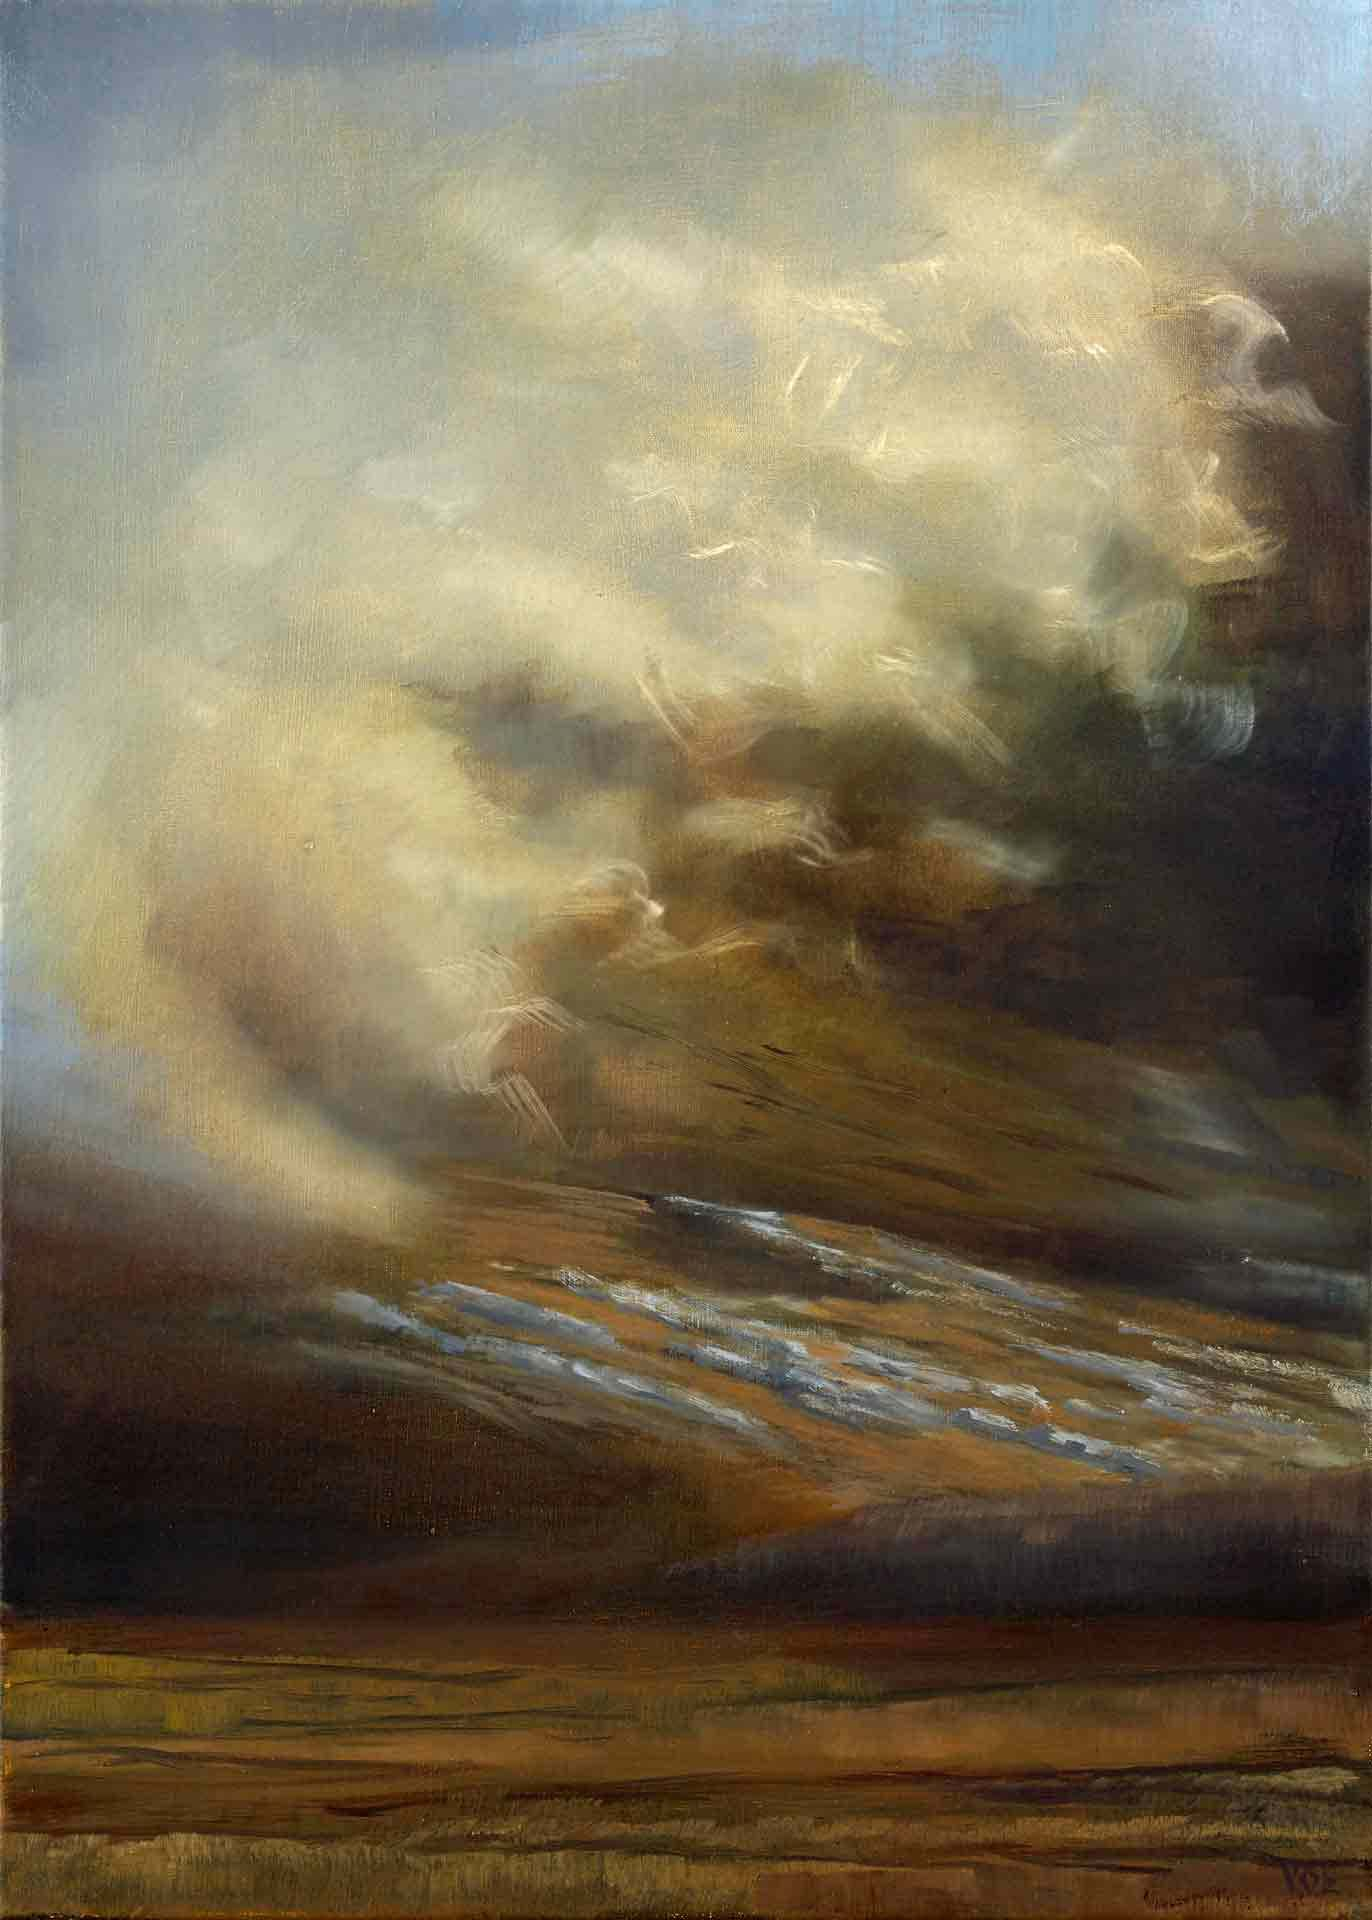 Sunlight and Clouds On Mealsival, Isle of Lewis. Contemporary Scottish Landscape Painting By Victoria Orr Ewing